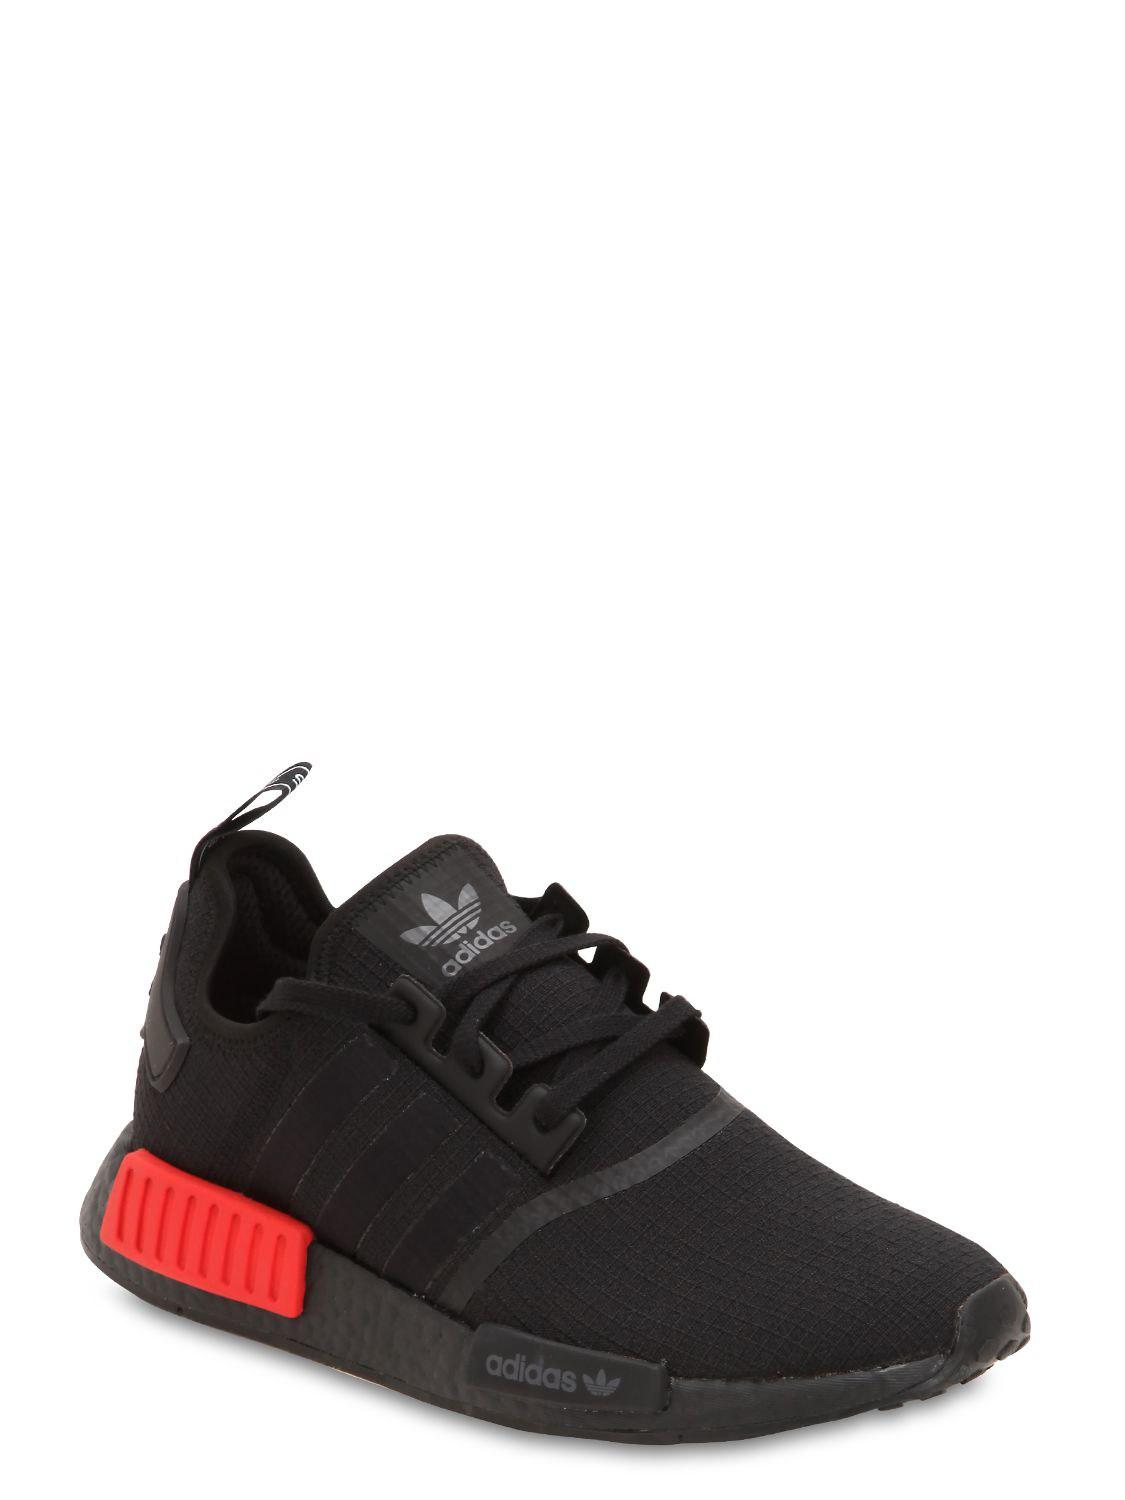 Adidas Originals - Black Nmd R1 Sneakers for Men - Lyst. View fullscreen 7ddef33a8